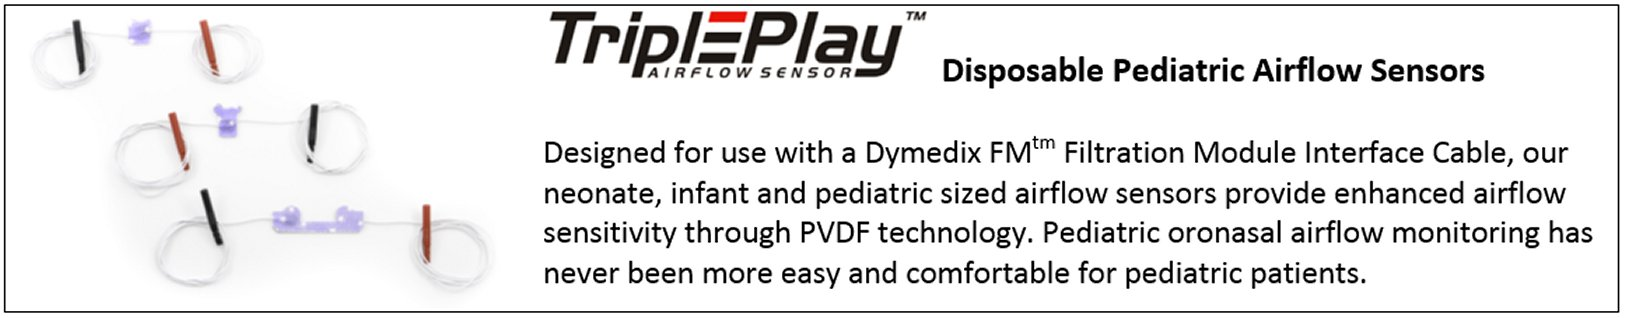 Disposable Pediatric Airflow Sensors